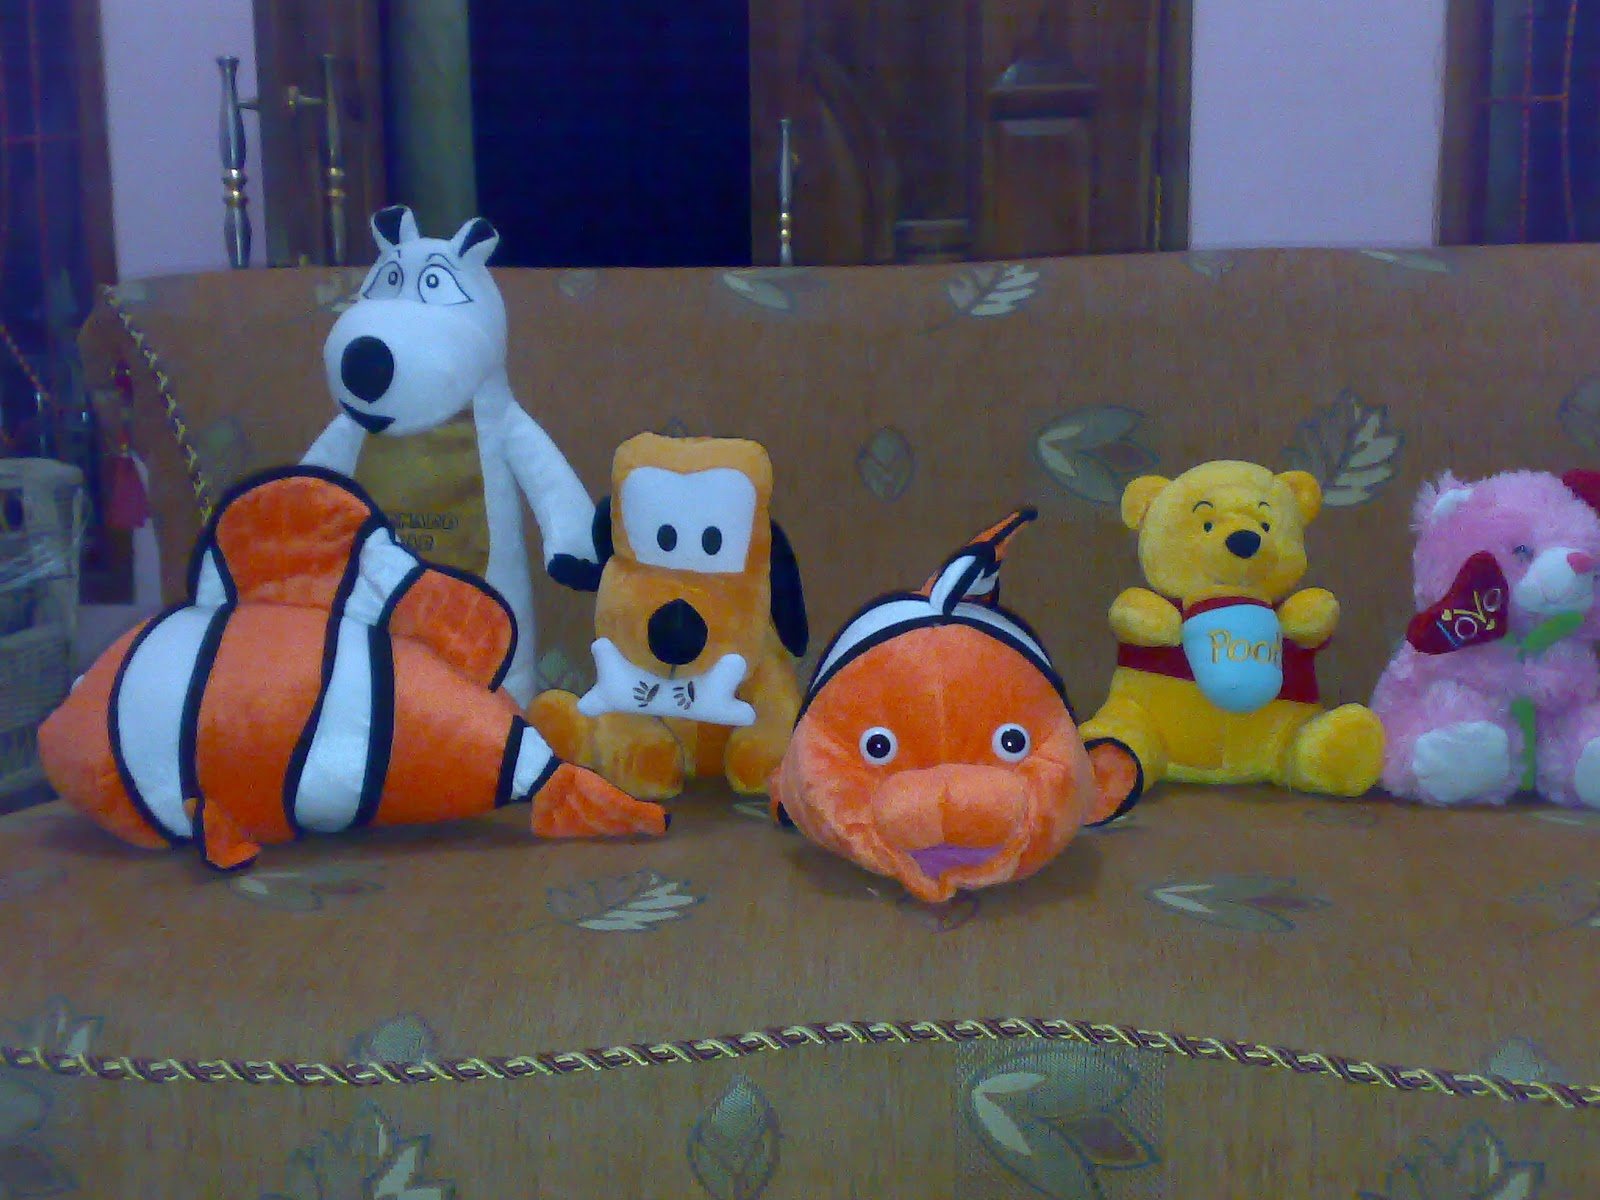 Boneka Murah Jumbo And Import China Cantik Lucu